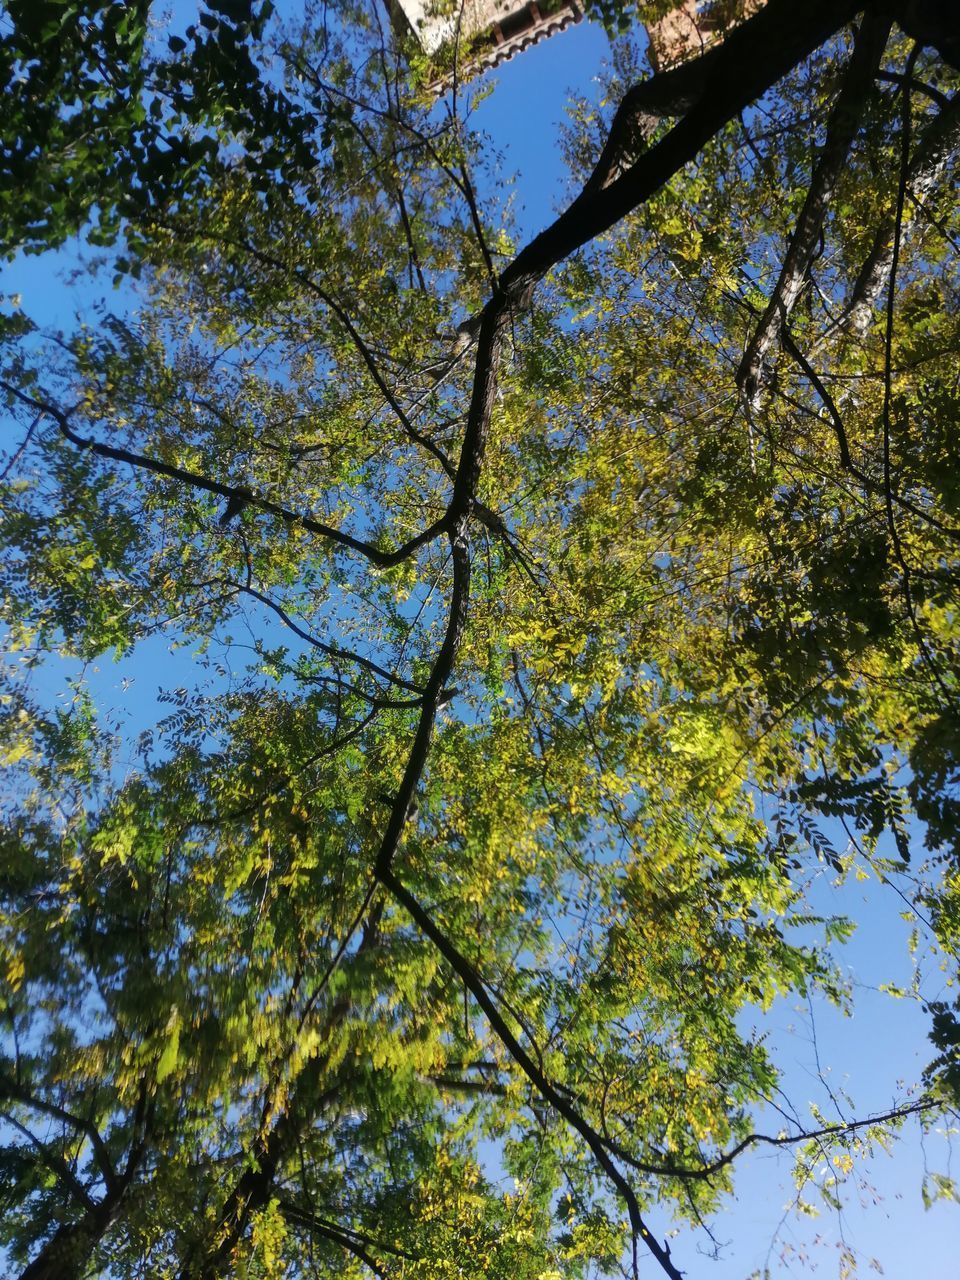 tree, plant, low angle view, beauty in nature, branch, sky, growth, nature, no people, day, tranquility, outdoors, clear sky, plant part, leaf, tree canopy, sunlight, backgrounds, forest, green color, springtime, directly below, spring, leaves